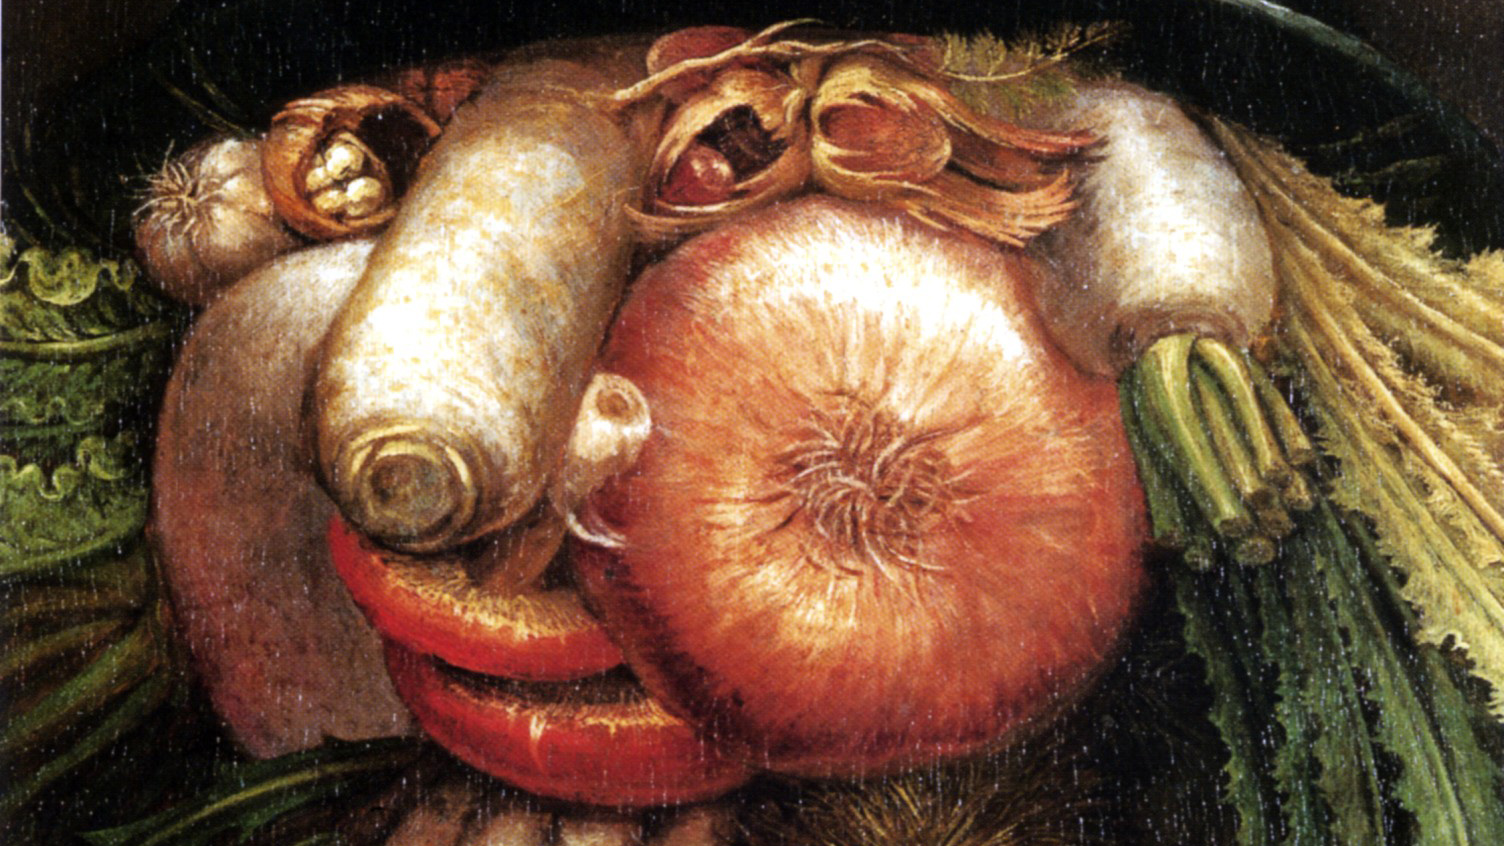 Giuseppe Arcimboldo - Portrait with Vegetables (The Green Grocer)